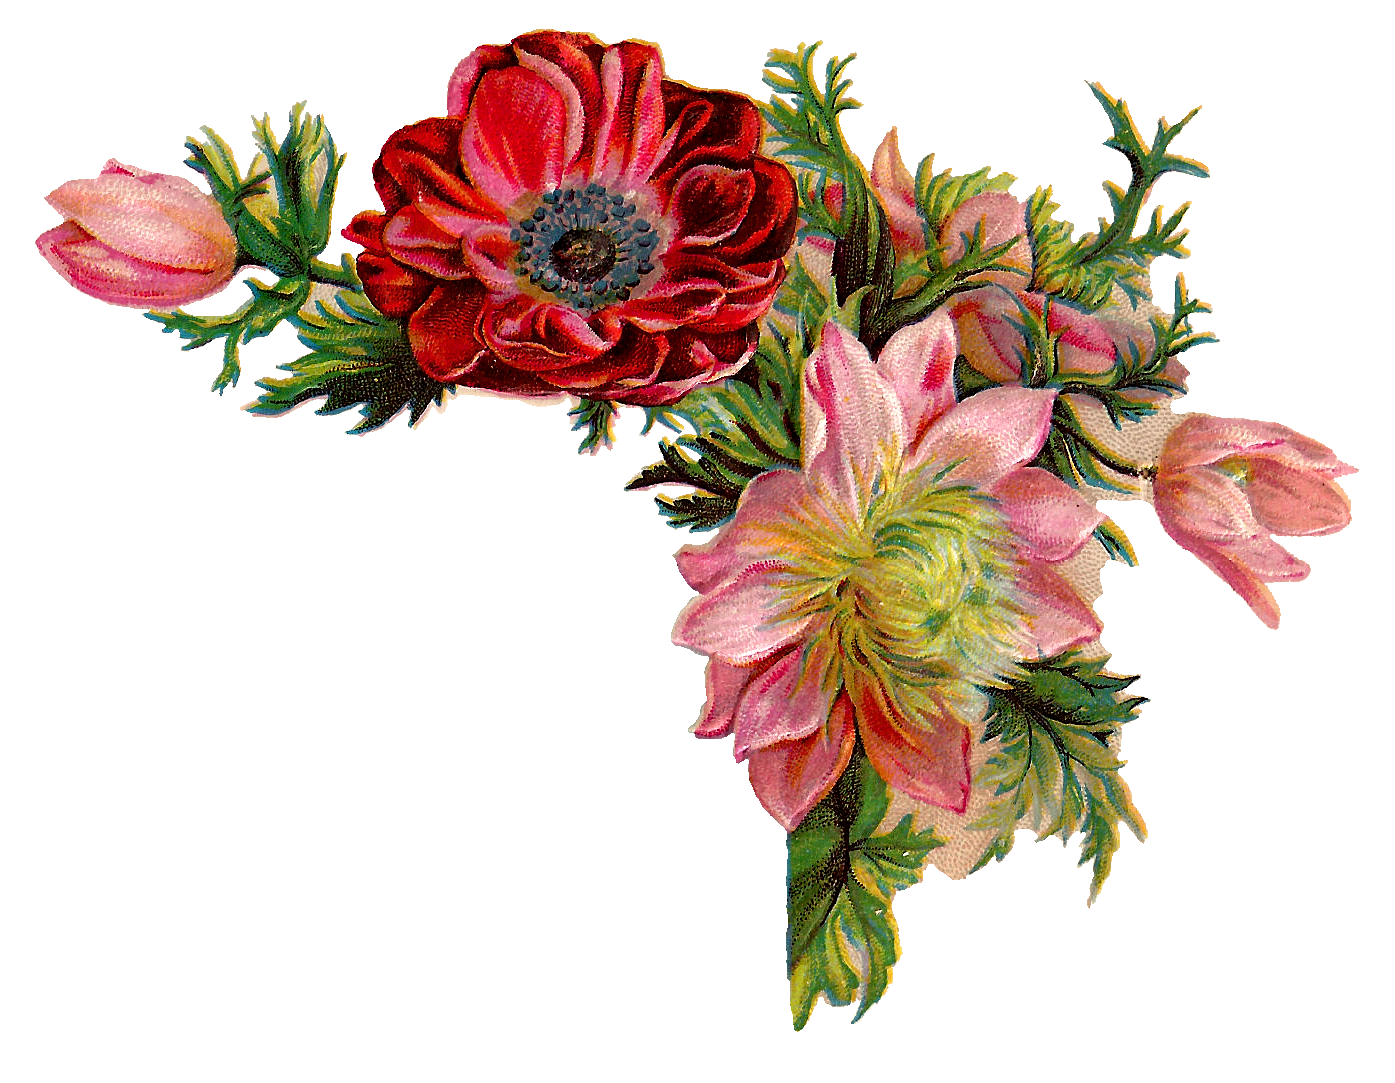 Antique Images Free Digital Flower Of Corner Design With Red And Pink Flowers